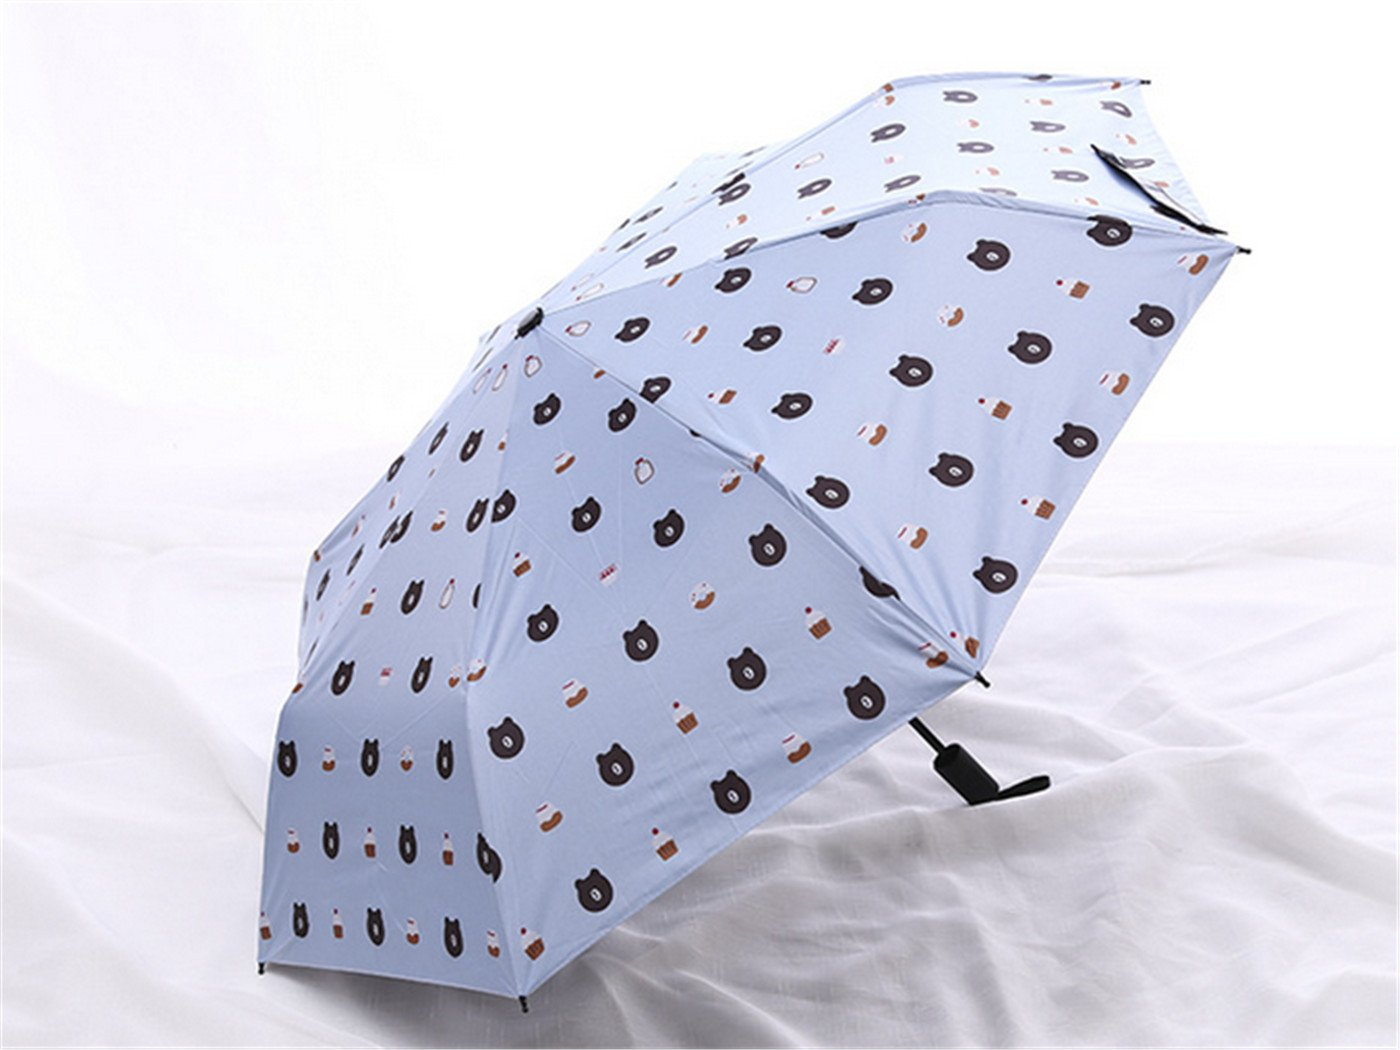 GKRY Fashion Art Umbrella/Windproof Travel Umbrellas/Folding Umbrella/for Business and Travels/SPF 352+ SUN RAIN Umbrella/RAIN Umbrella The ultra fine umbrella blue sky. by GKRY Home (Image #1)